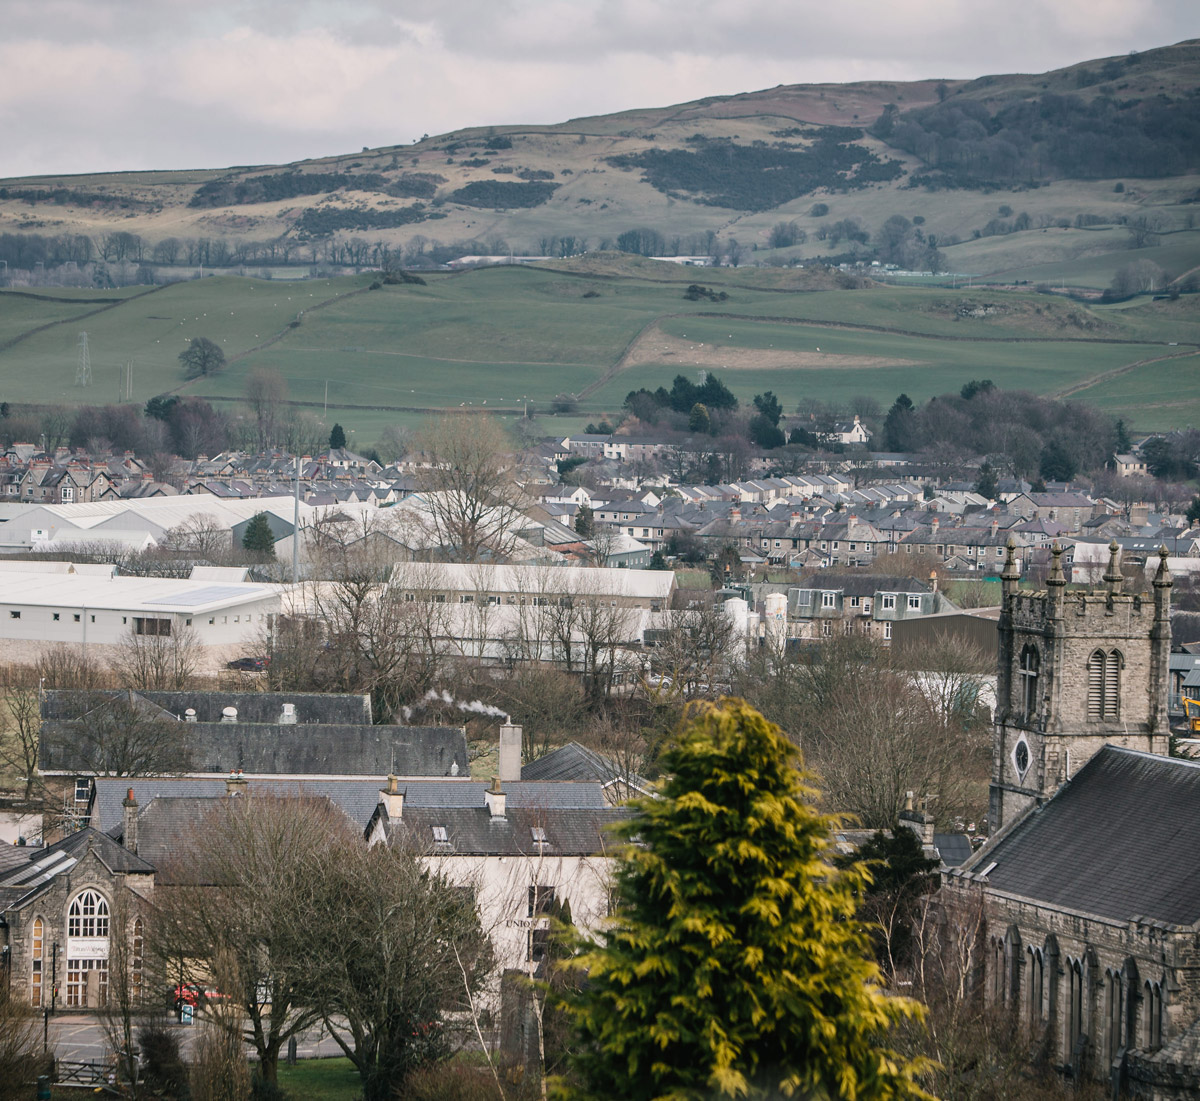 View of Kendal fells over the towns rooftops